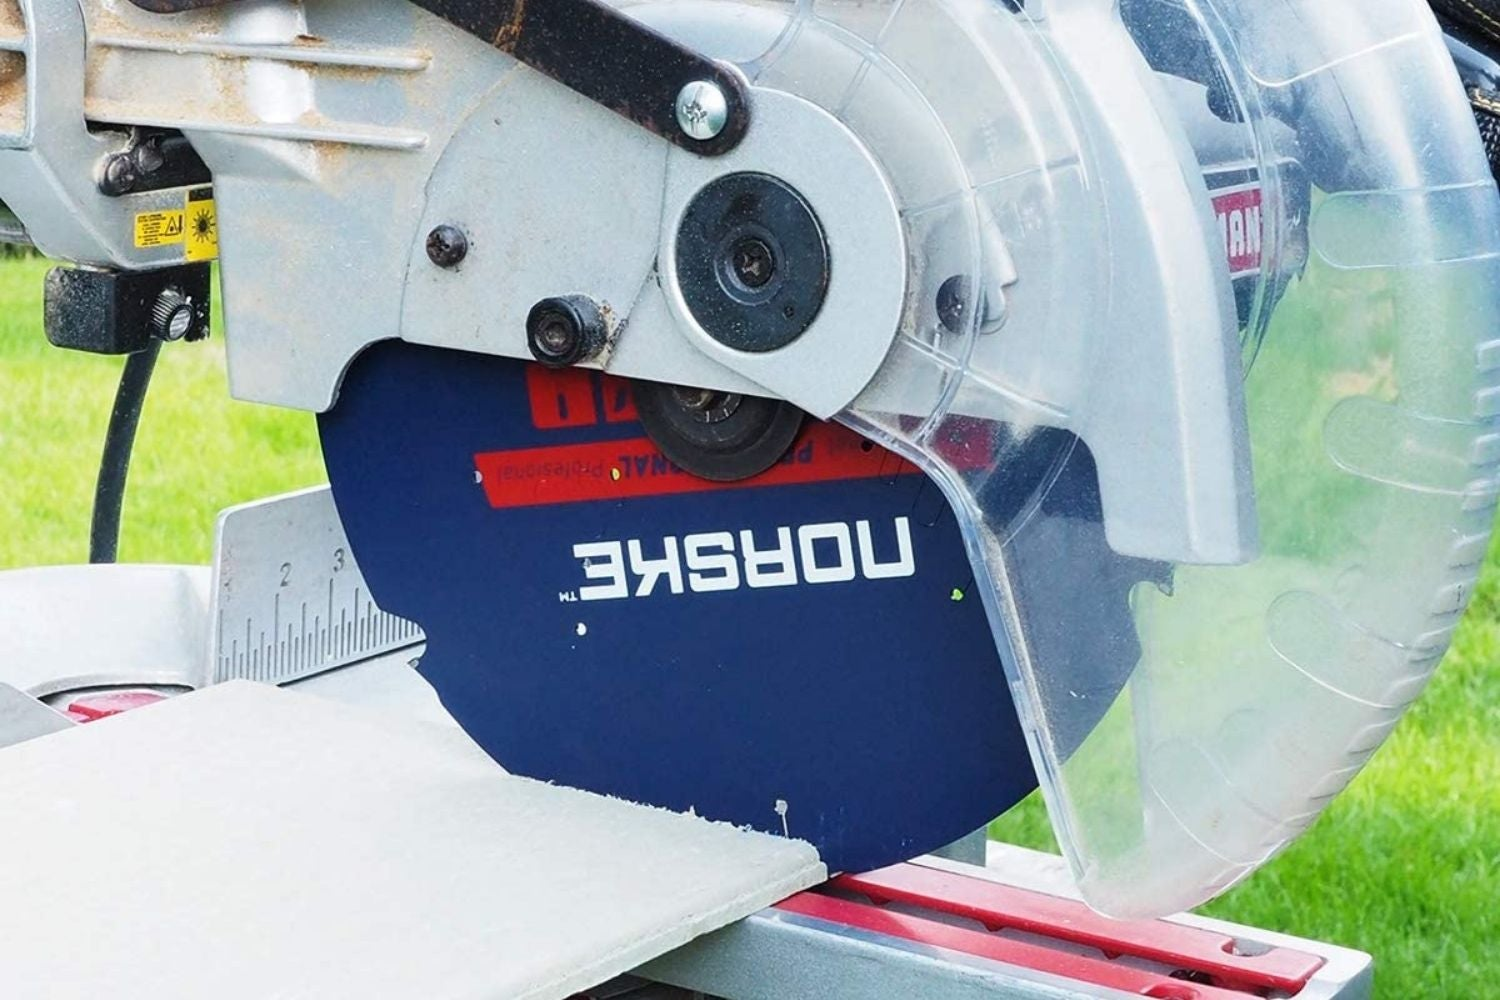 The Best Saw Blade For Cutting Laminate, What Saw Blade To Use For Cutting Laminate Flooring